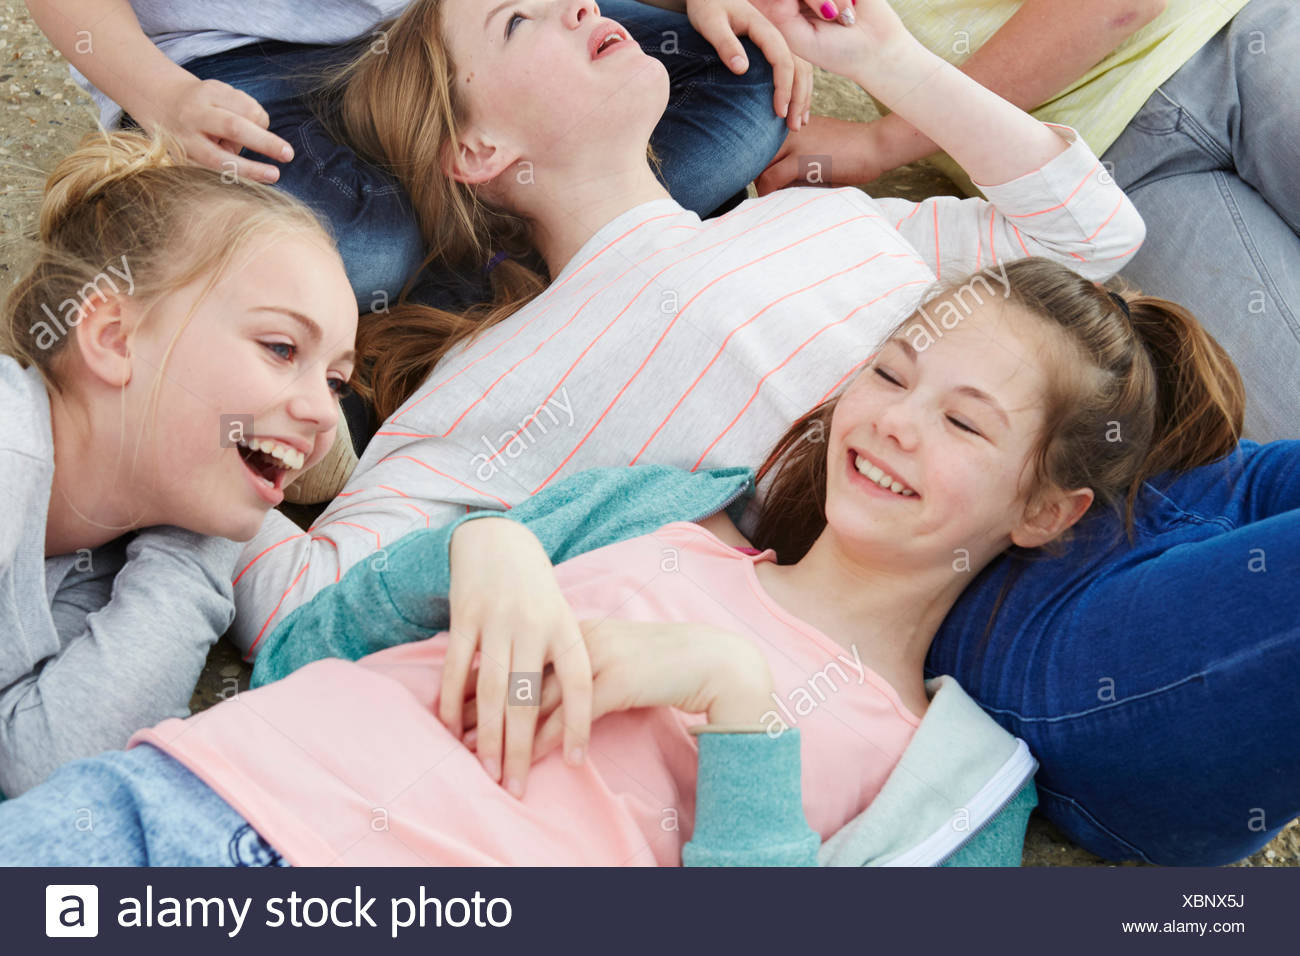 Cropped view of five boys and girls lying on ground - Stock Image